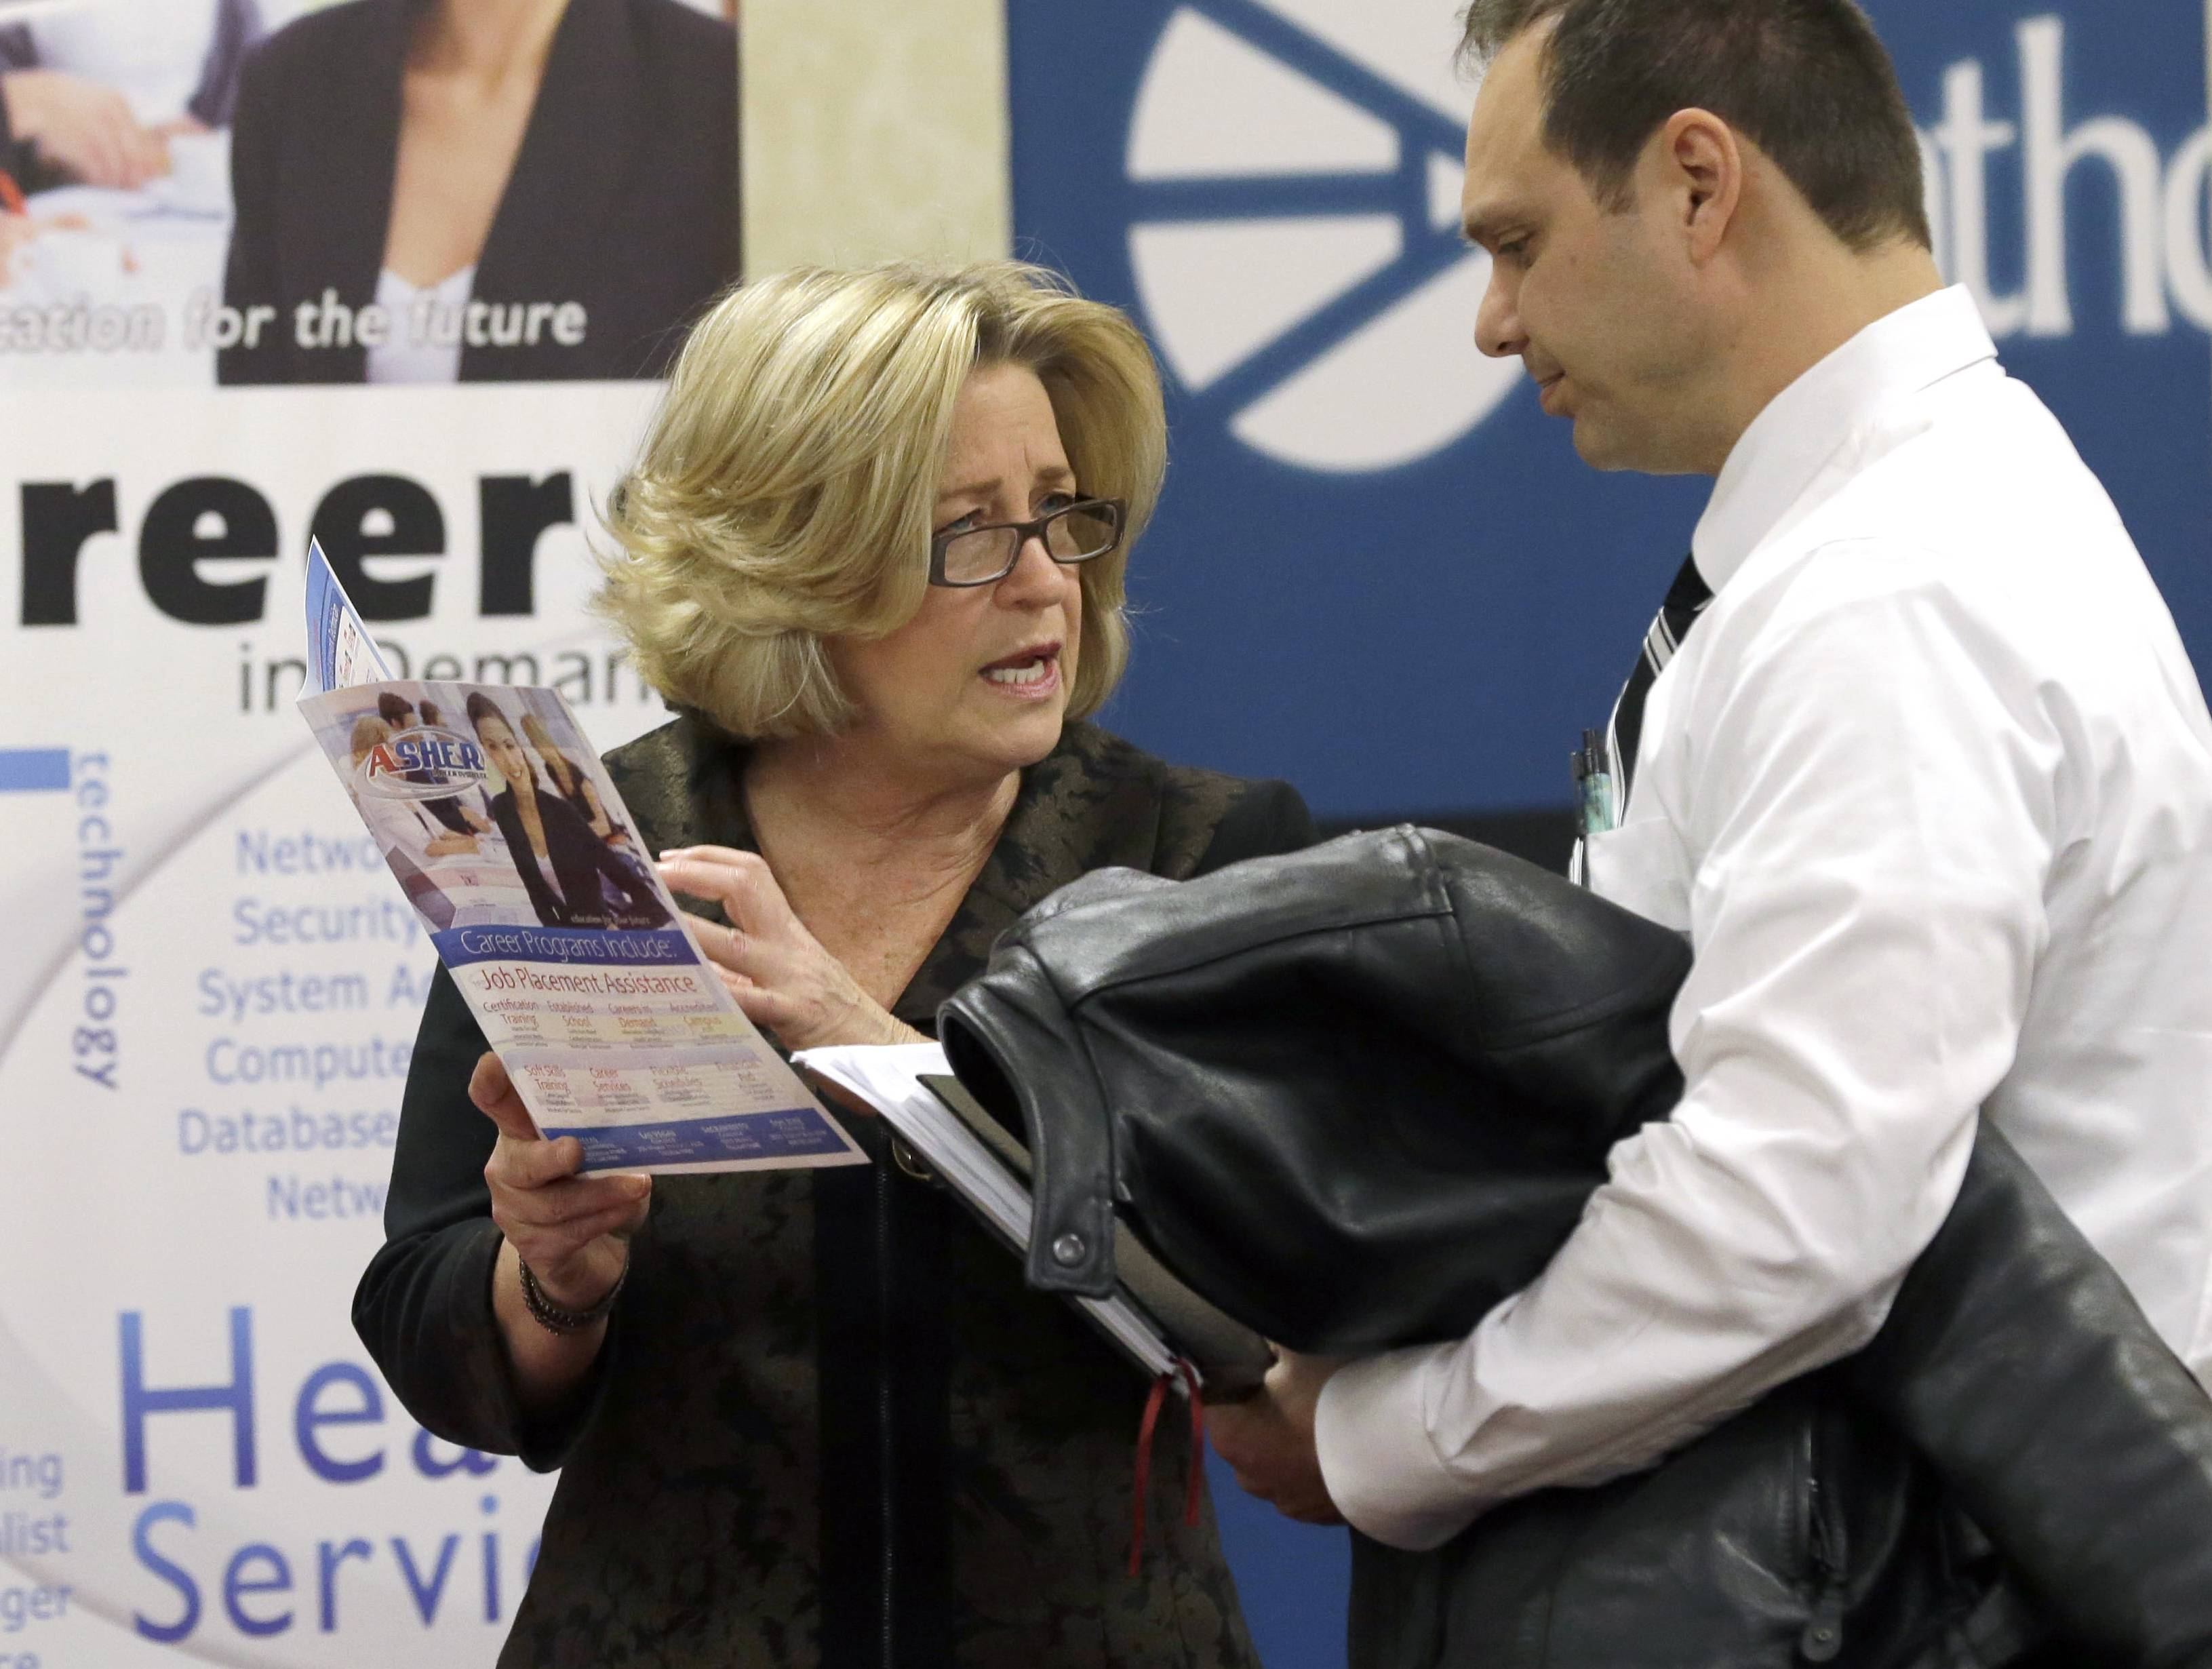 Recruiter Valera Kulow, left, speaks with job seeker Leonardo Vitiello during a career fair in Dallas. U.S. employers posted more job openings in February, a sign that hiring will likely improve in the months ahead.